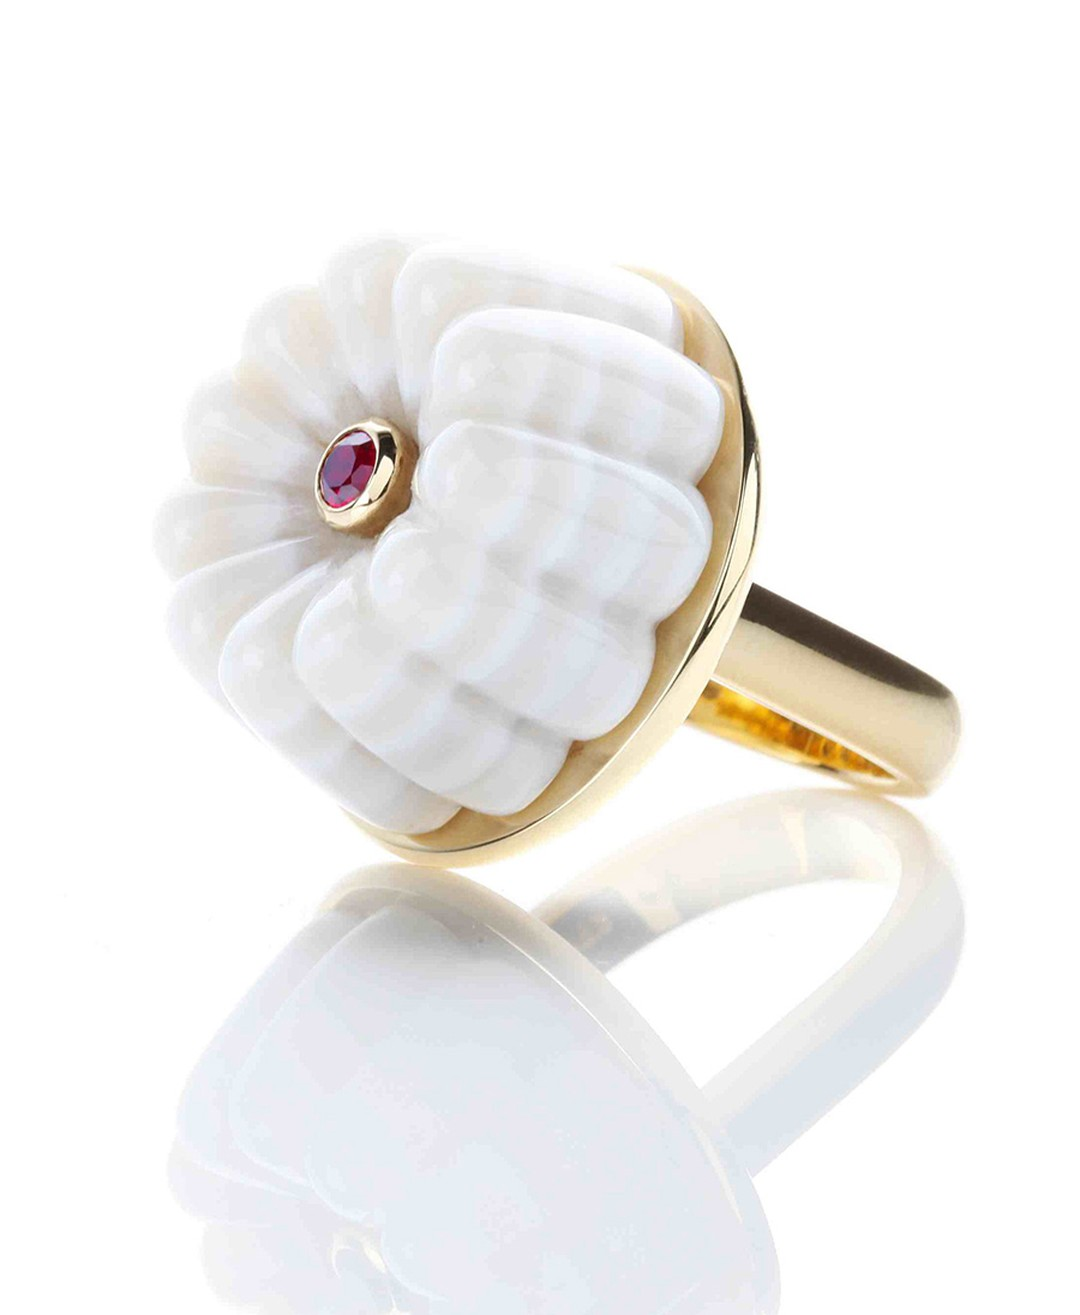 Cora-Sheibani-jelly-and-guglehopf-rings--£3500--£4200.jpg